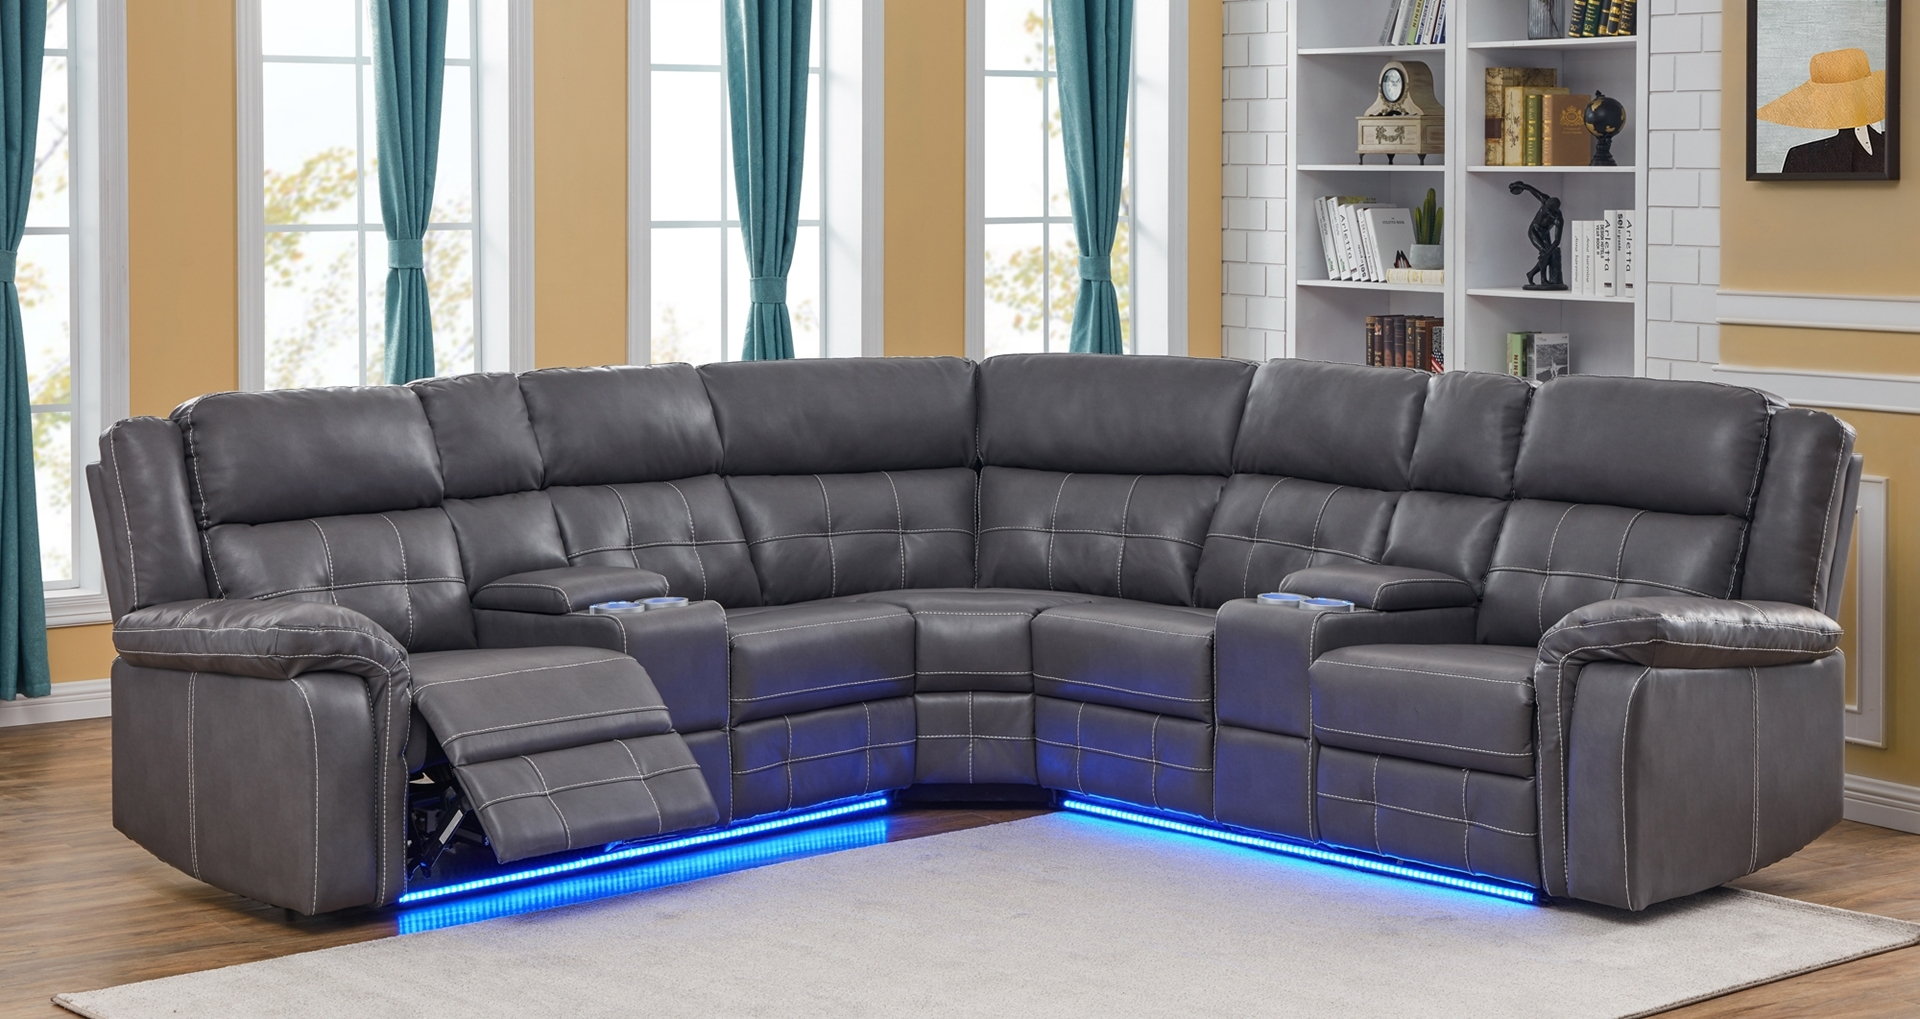 Cobalt Power/Manual Reclining Sectional Sofa With Led Regarding Houston Sectional Sofas (View 2 of 15)